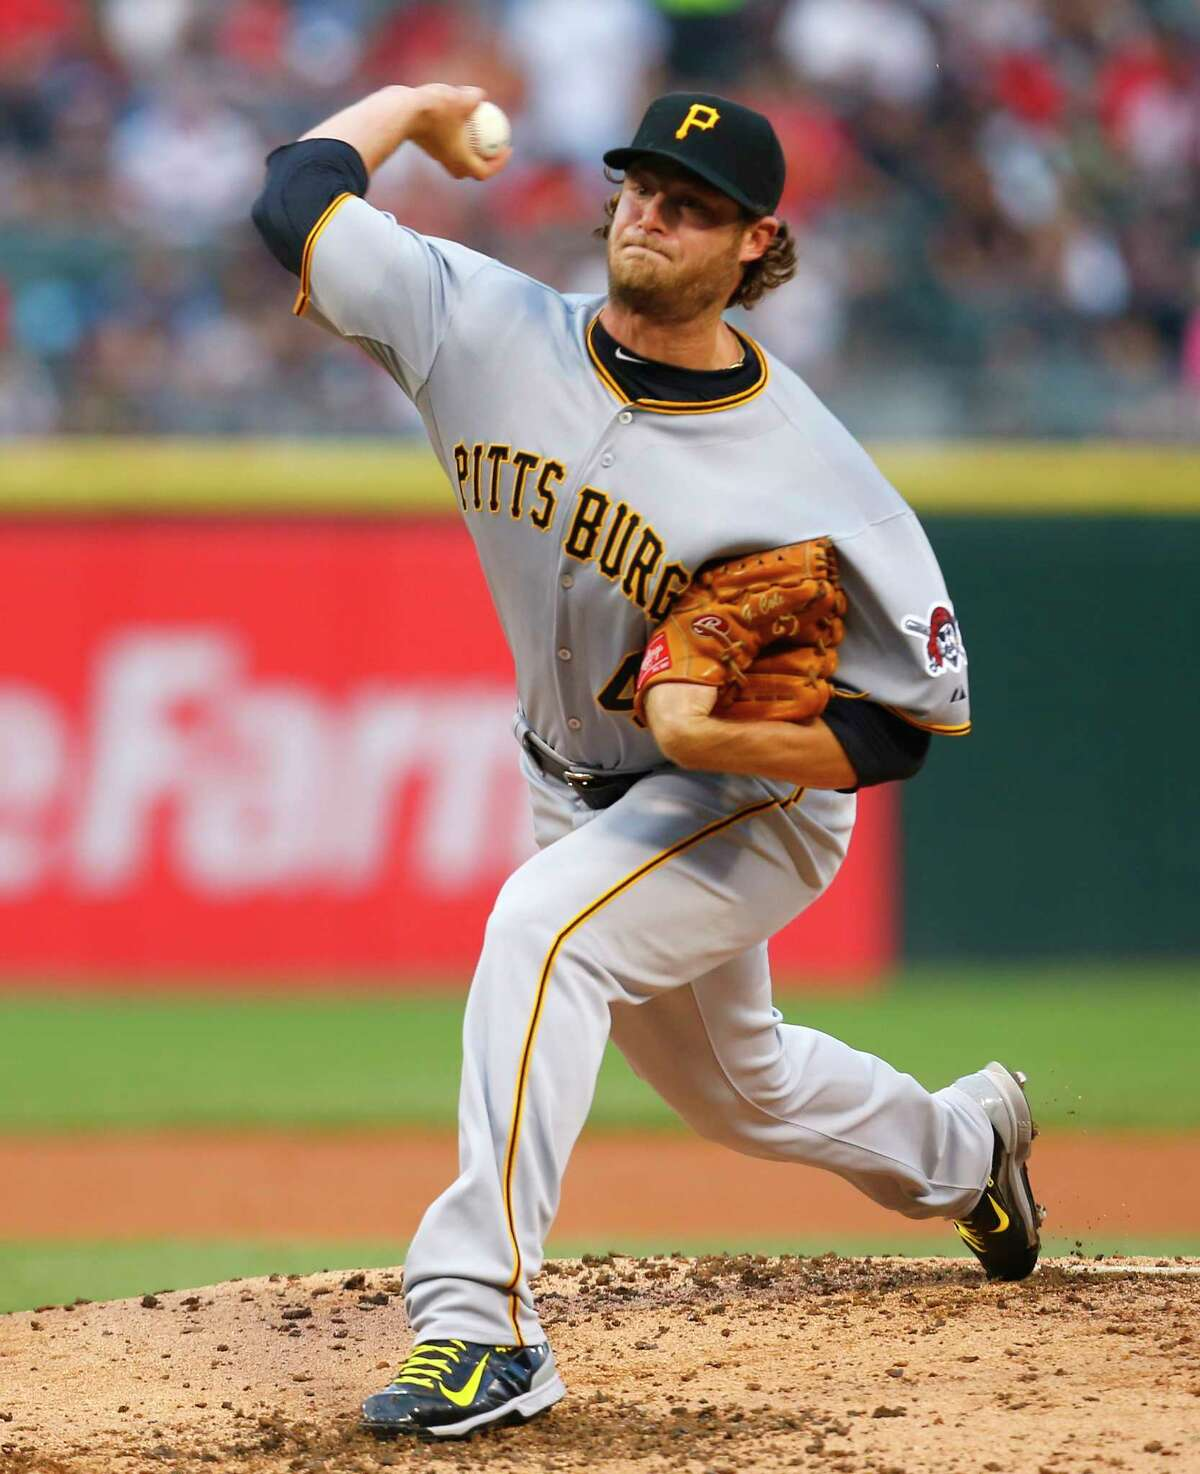 Gerrit Cole, who won 19 games for the Pirates in 2015 and isn't eligible for free agency until after the 2019 season, might be on the trade market if Pittsburgh deems itself a non-contender.